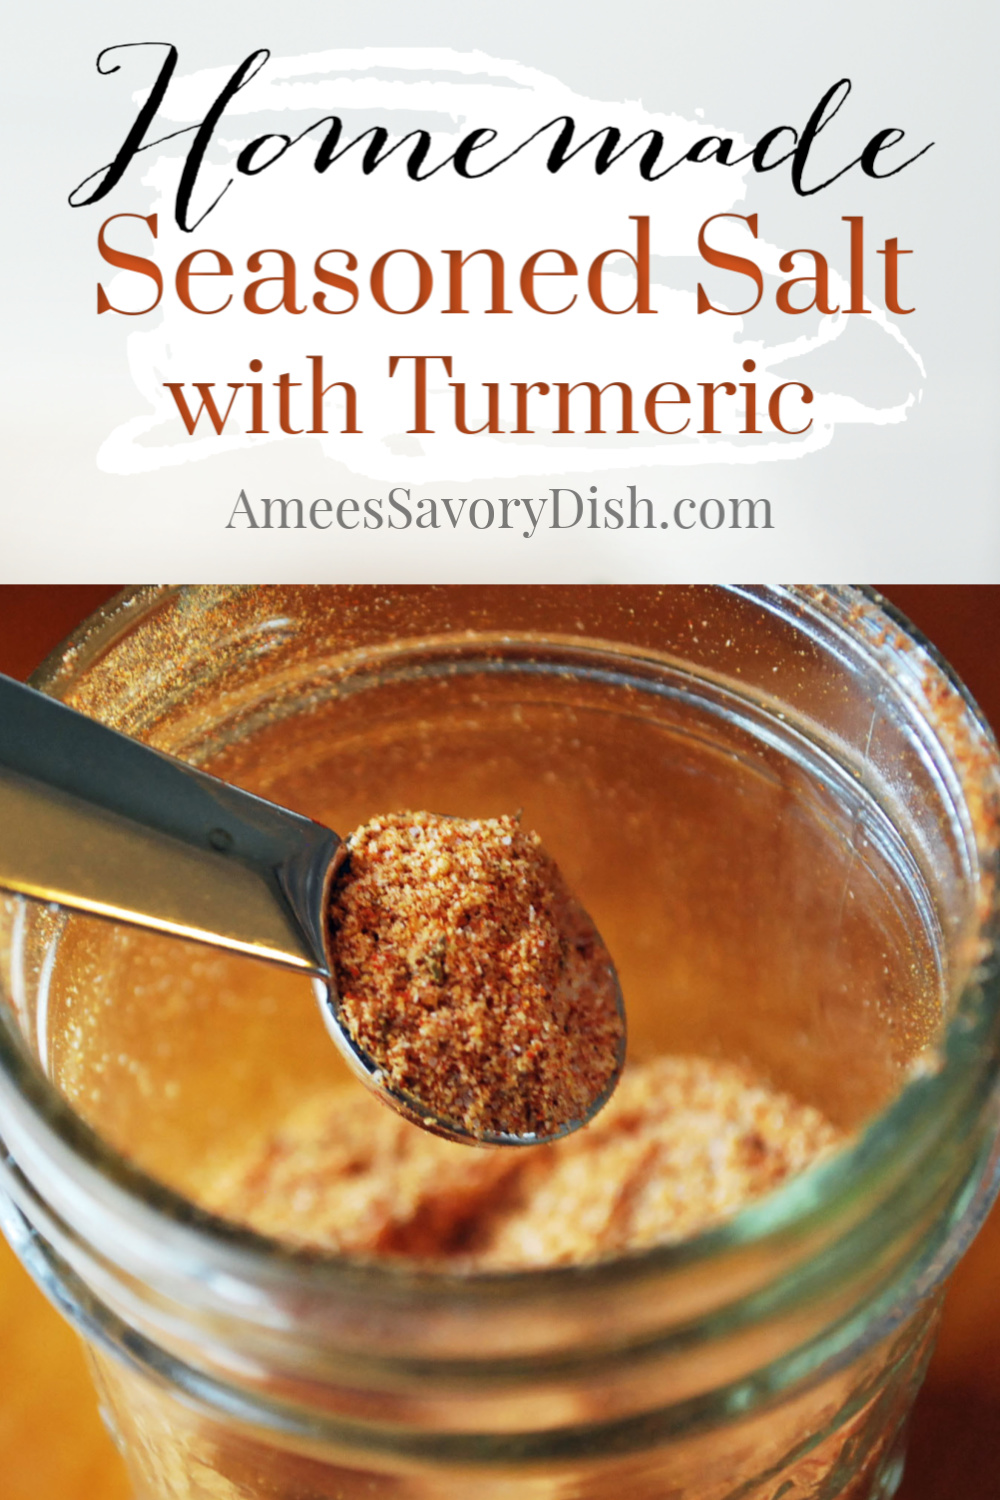 This Homemade Seasoned Salt is a tasty all-purpose blend made with turmeric, onion powder, garlic powder, salt, paprika and other herbs and spices that you probably already have on hand in your pantry.    via @Ameecooks